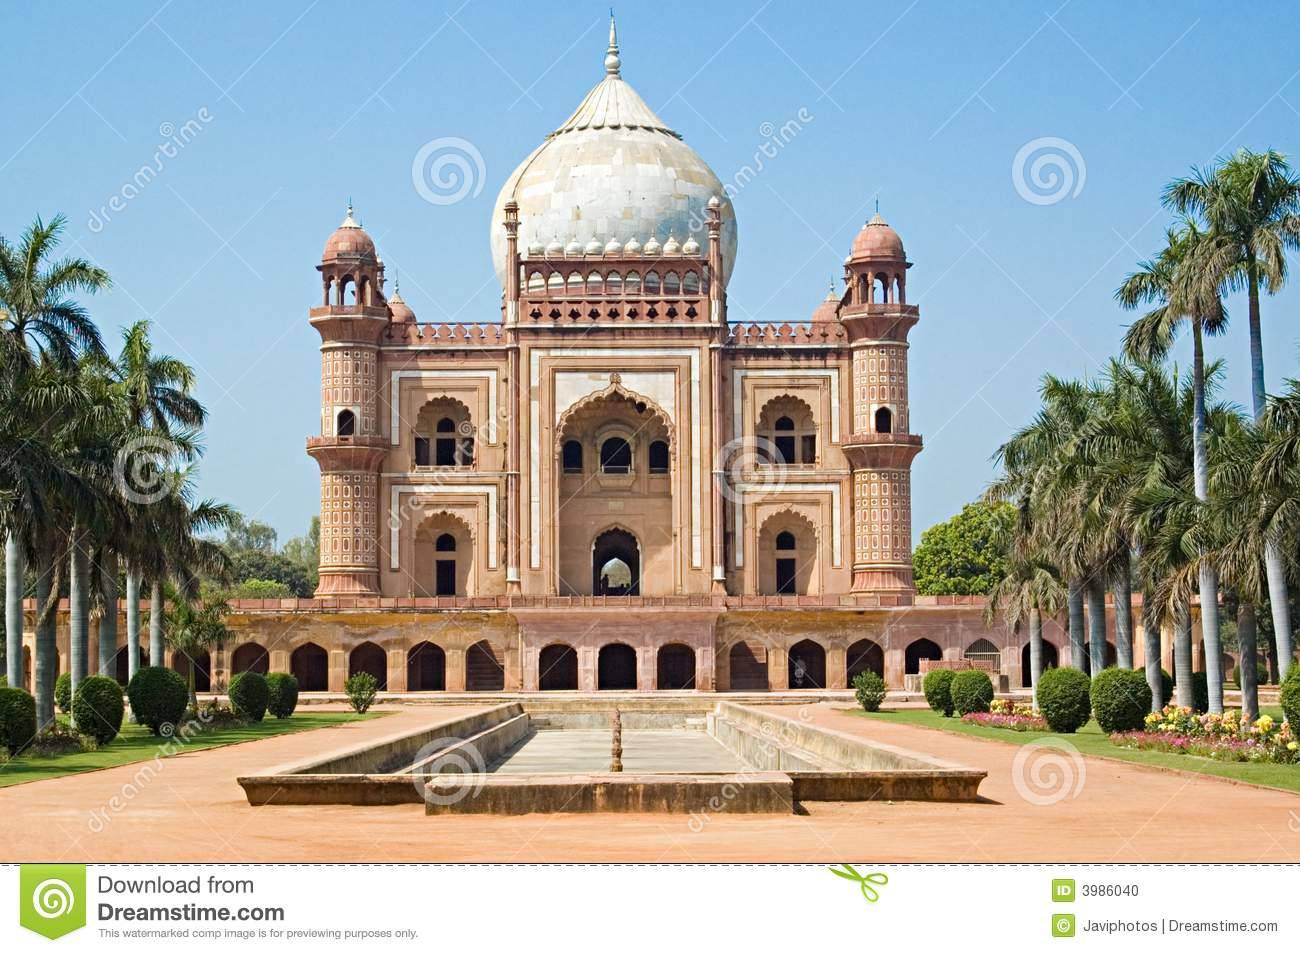 Stock Photo Historic Mughal Architecture Image3986040